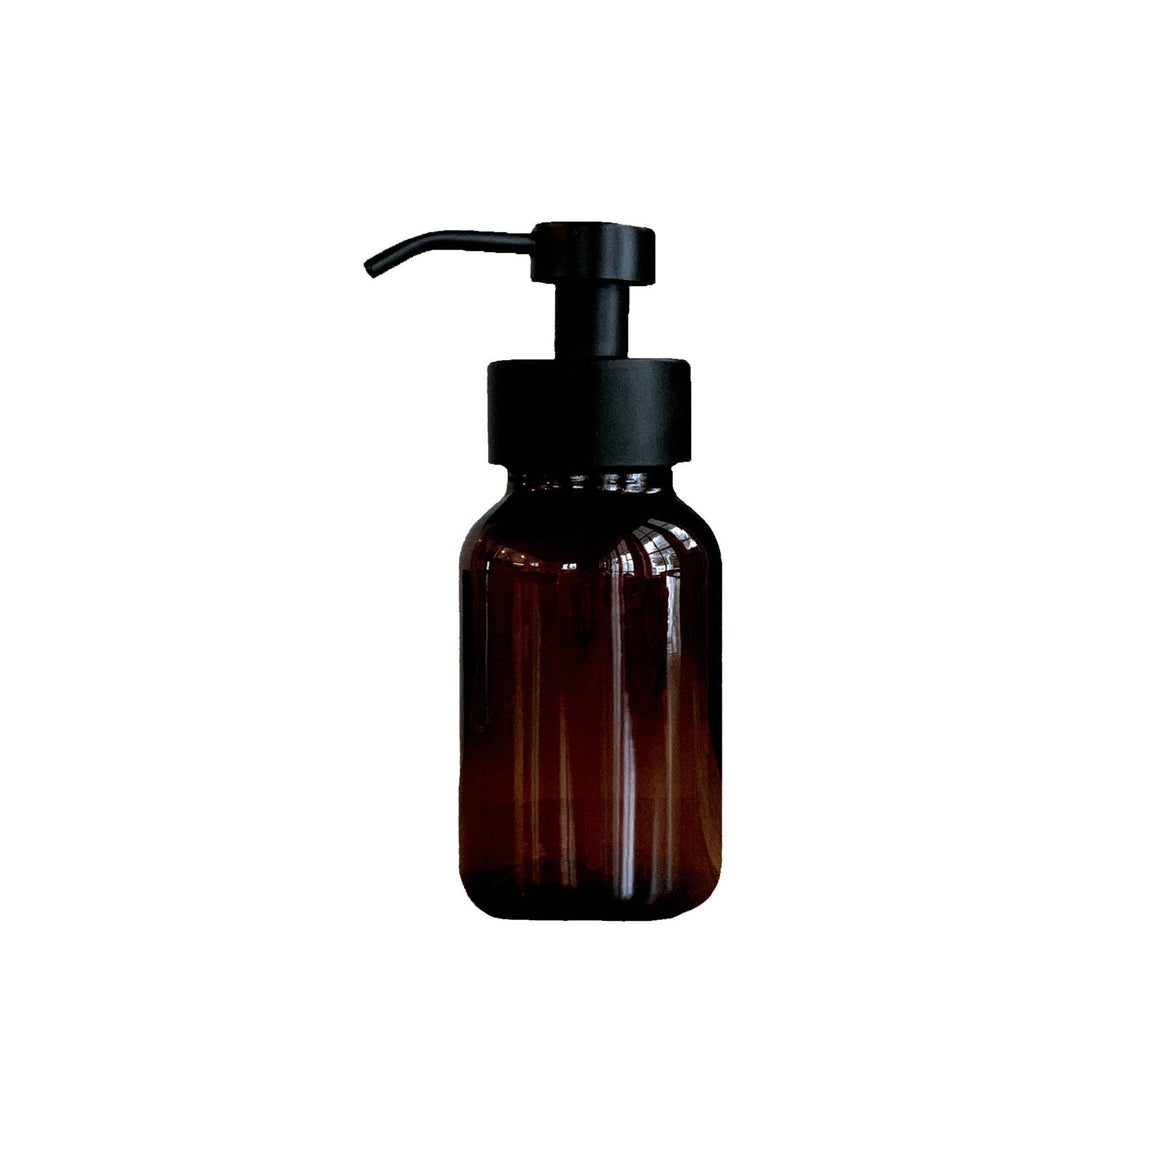 Foaming Liquid Soap Bottle